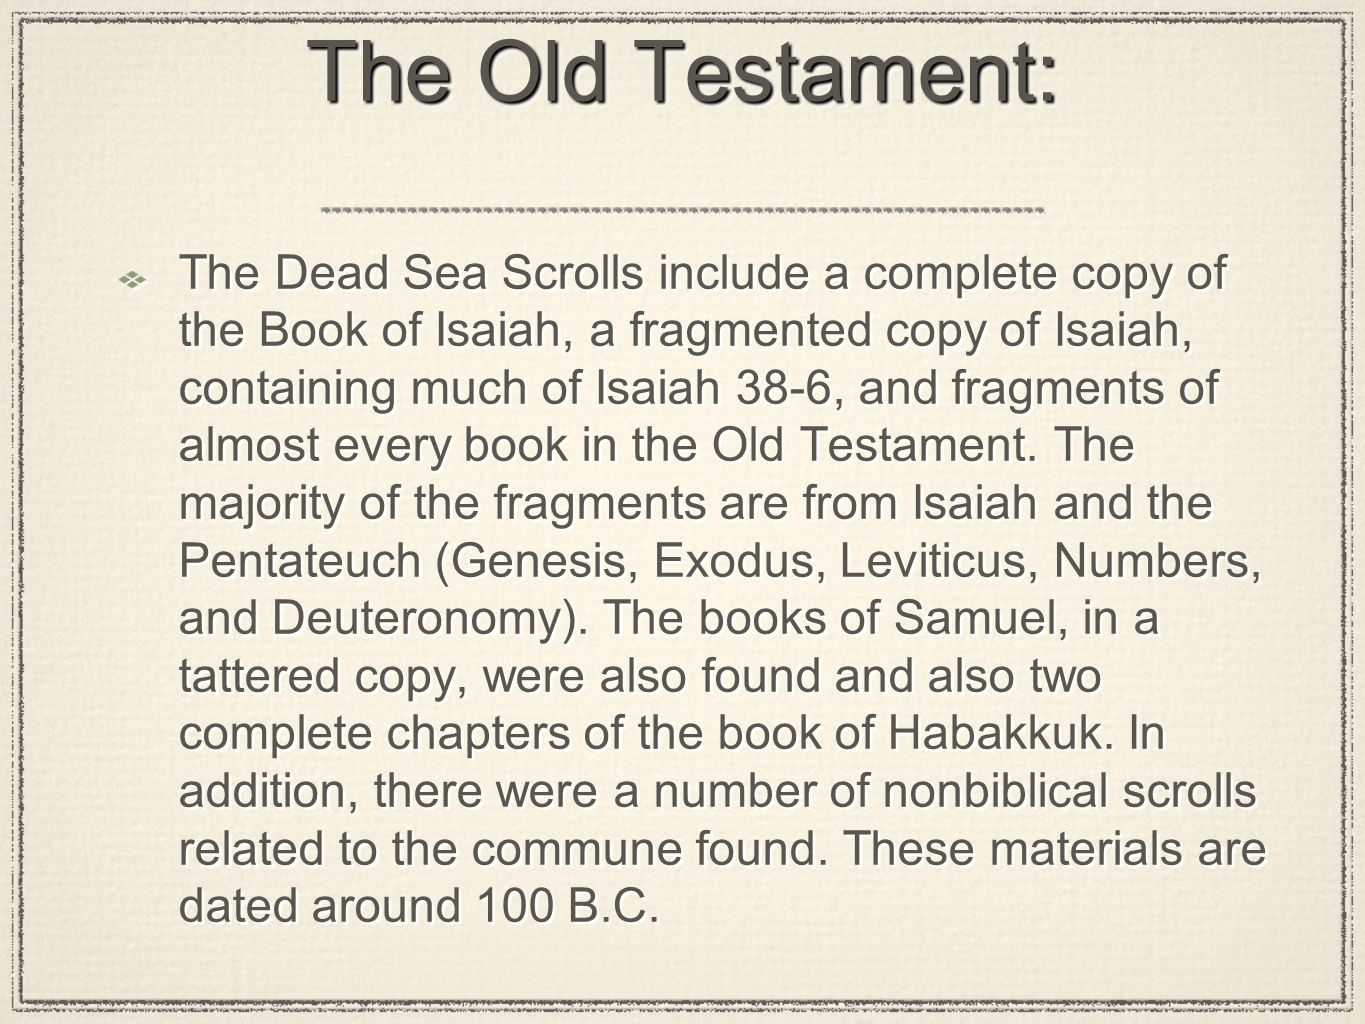 The Old Testament: The Dead Sea Scrolls include a complete copy of the Book of Isaiah, a fragmented copy of Isaiah, containing much of Isaiah 38-6, an